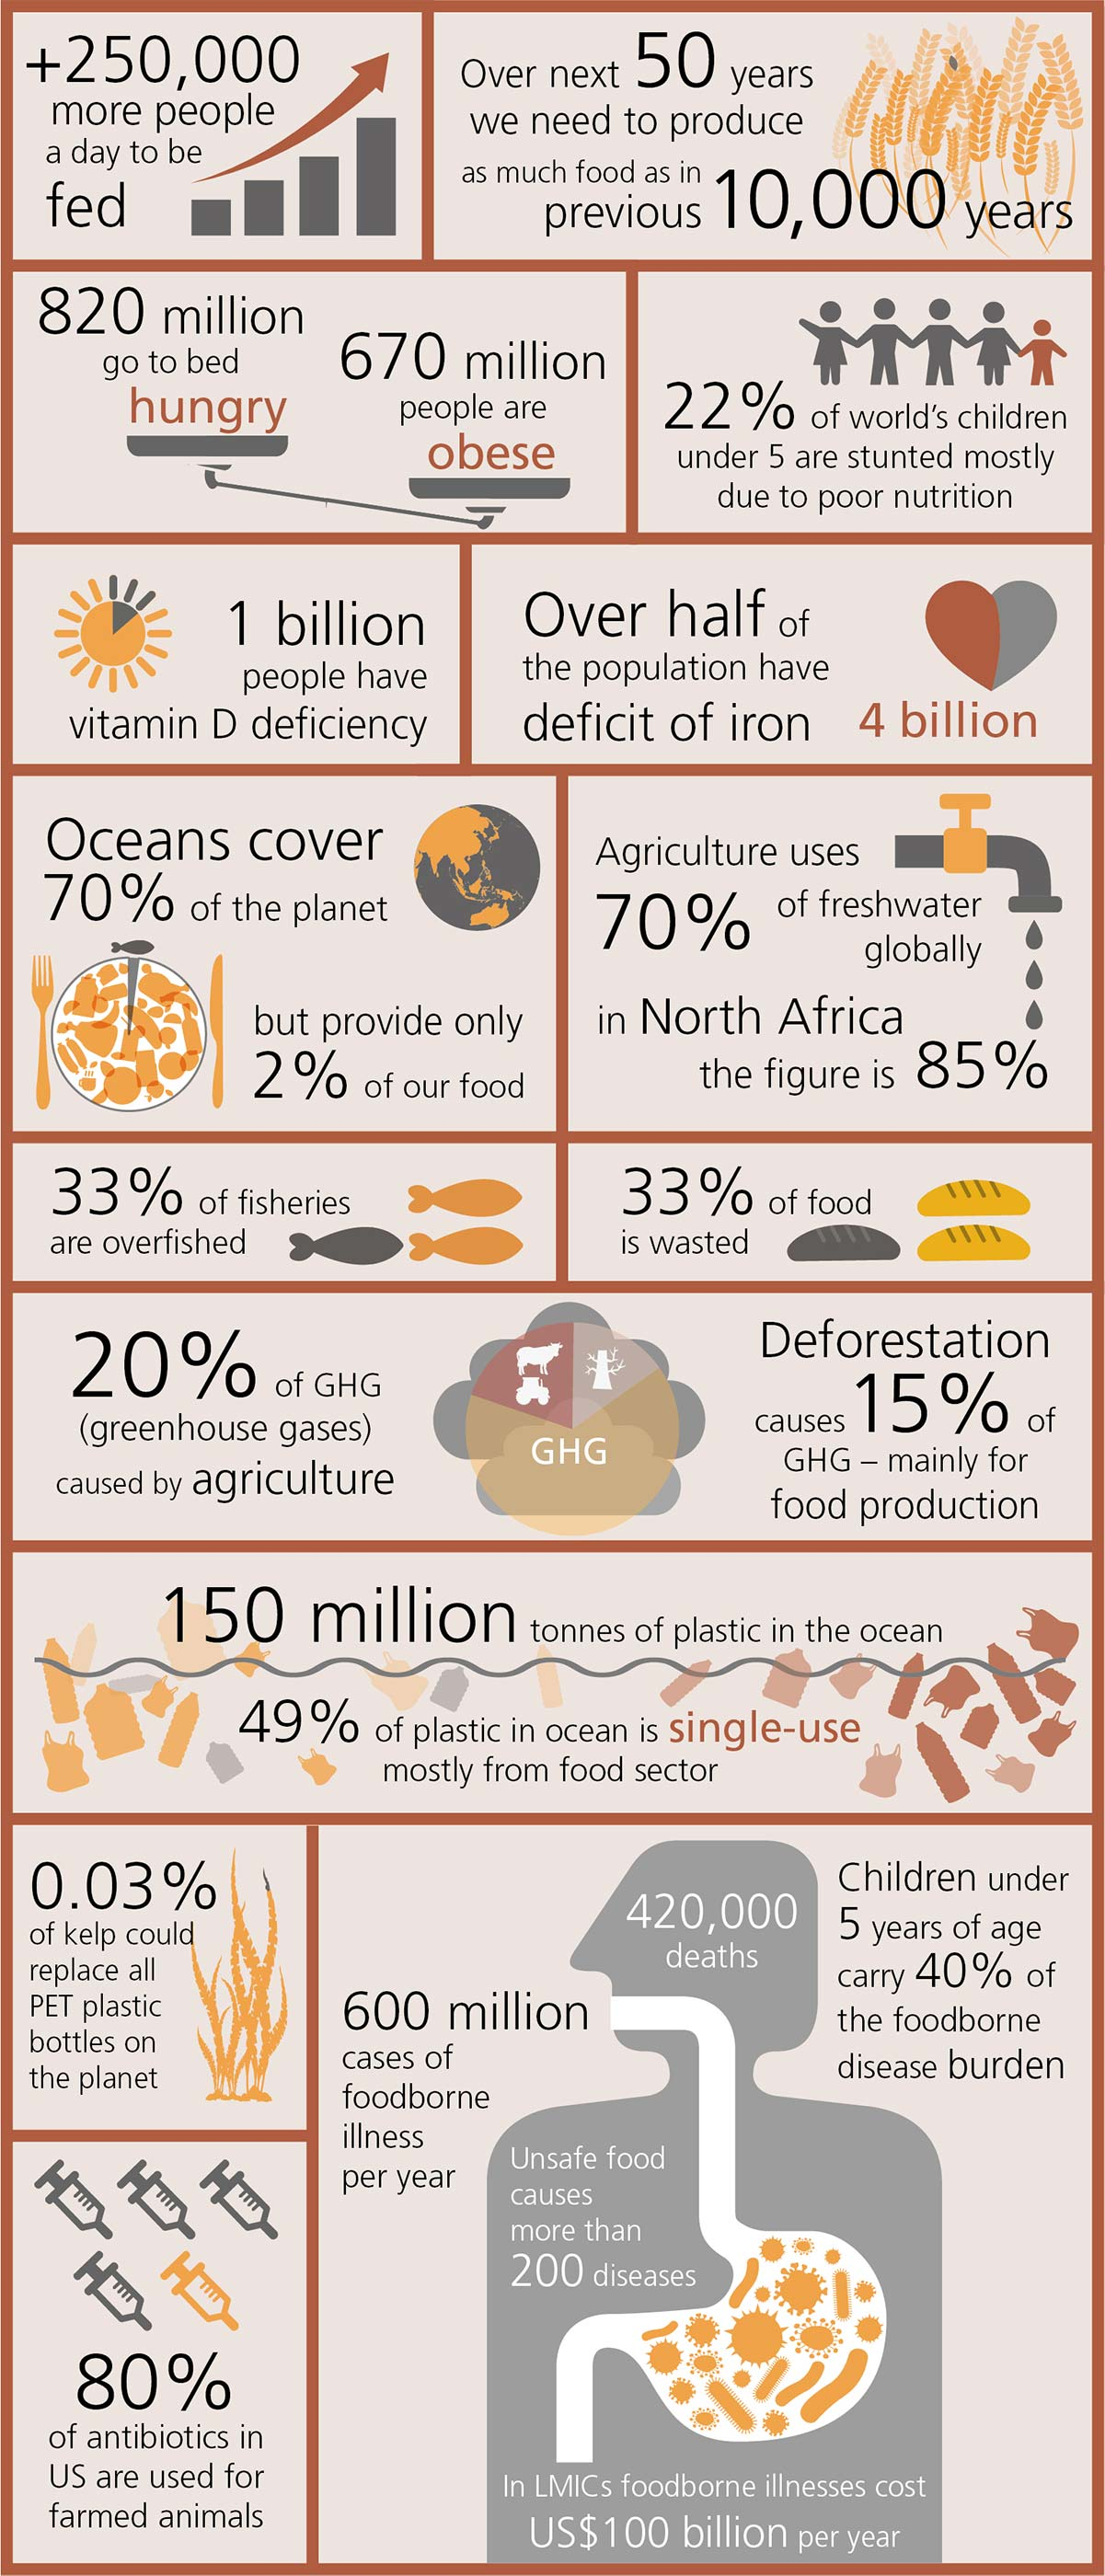 Food facts and figures from Foresight review of food safety from the Lloyd's Register Foundation